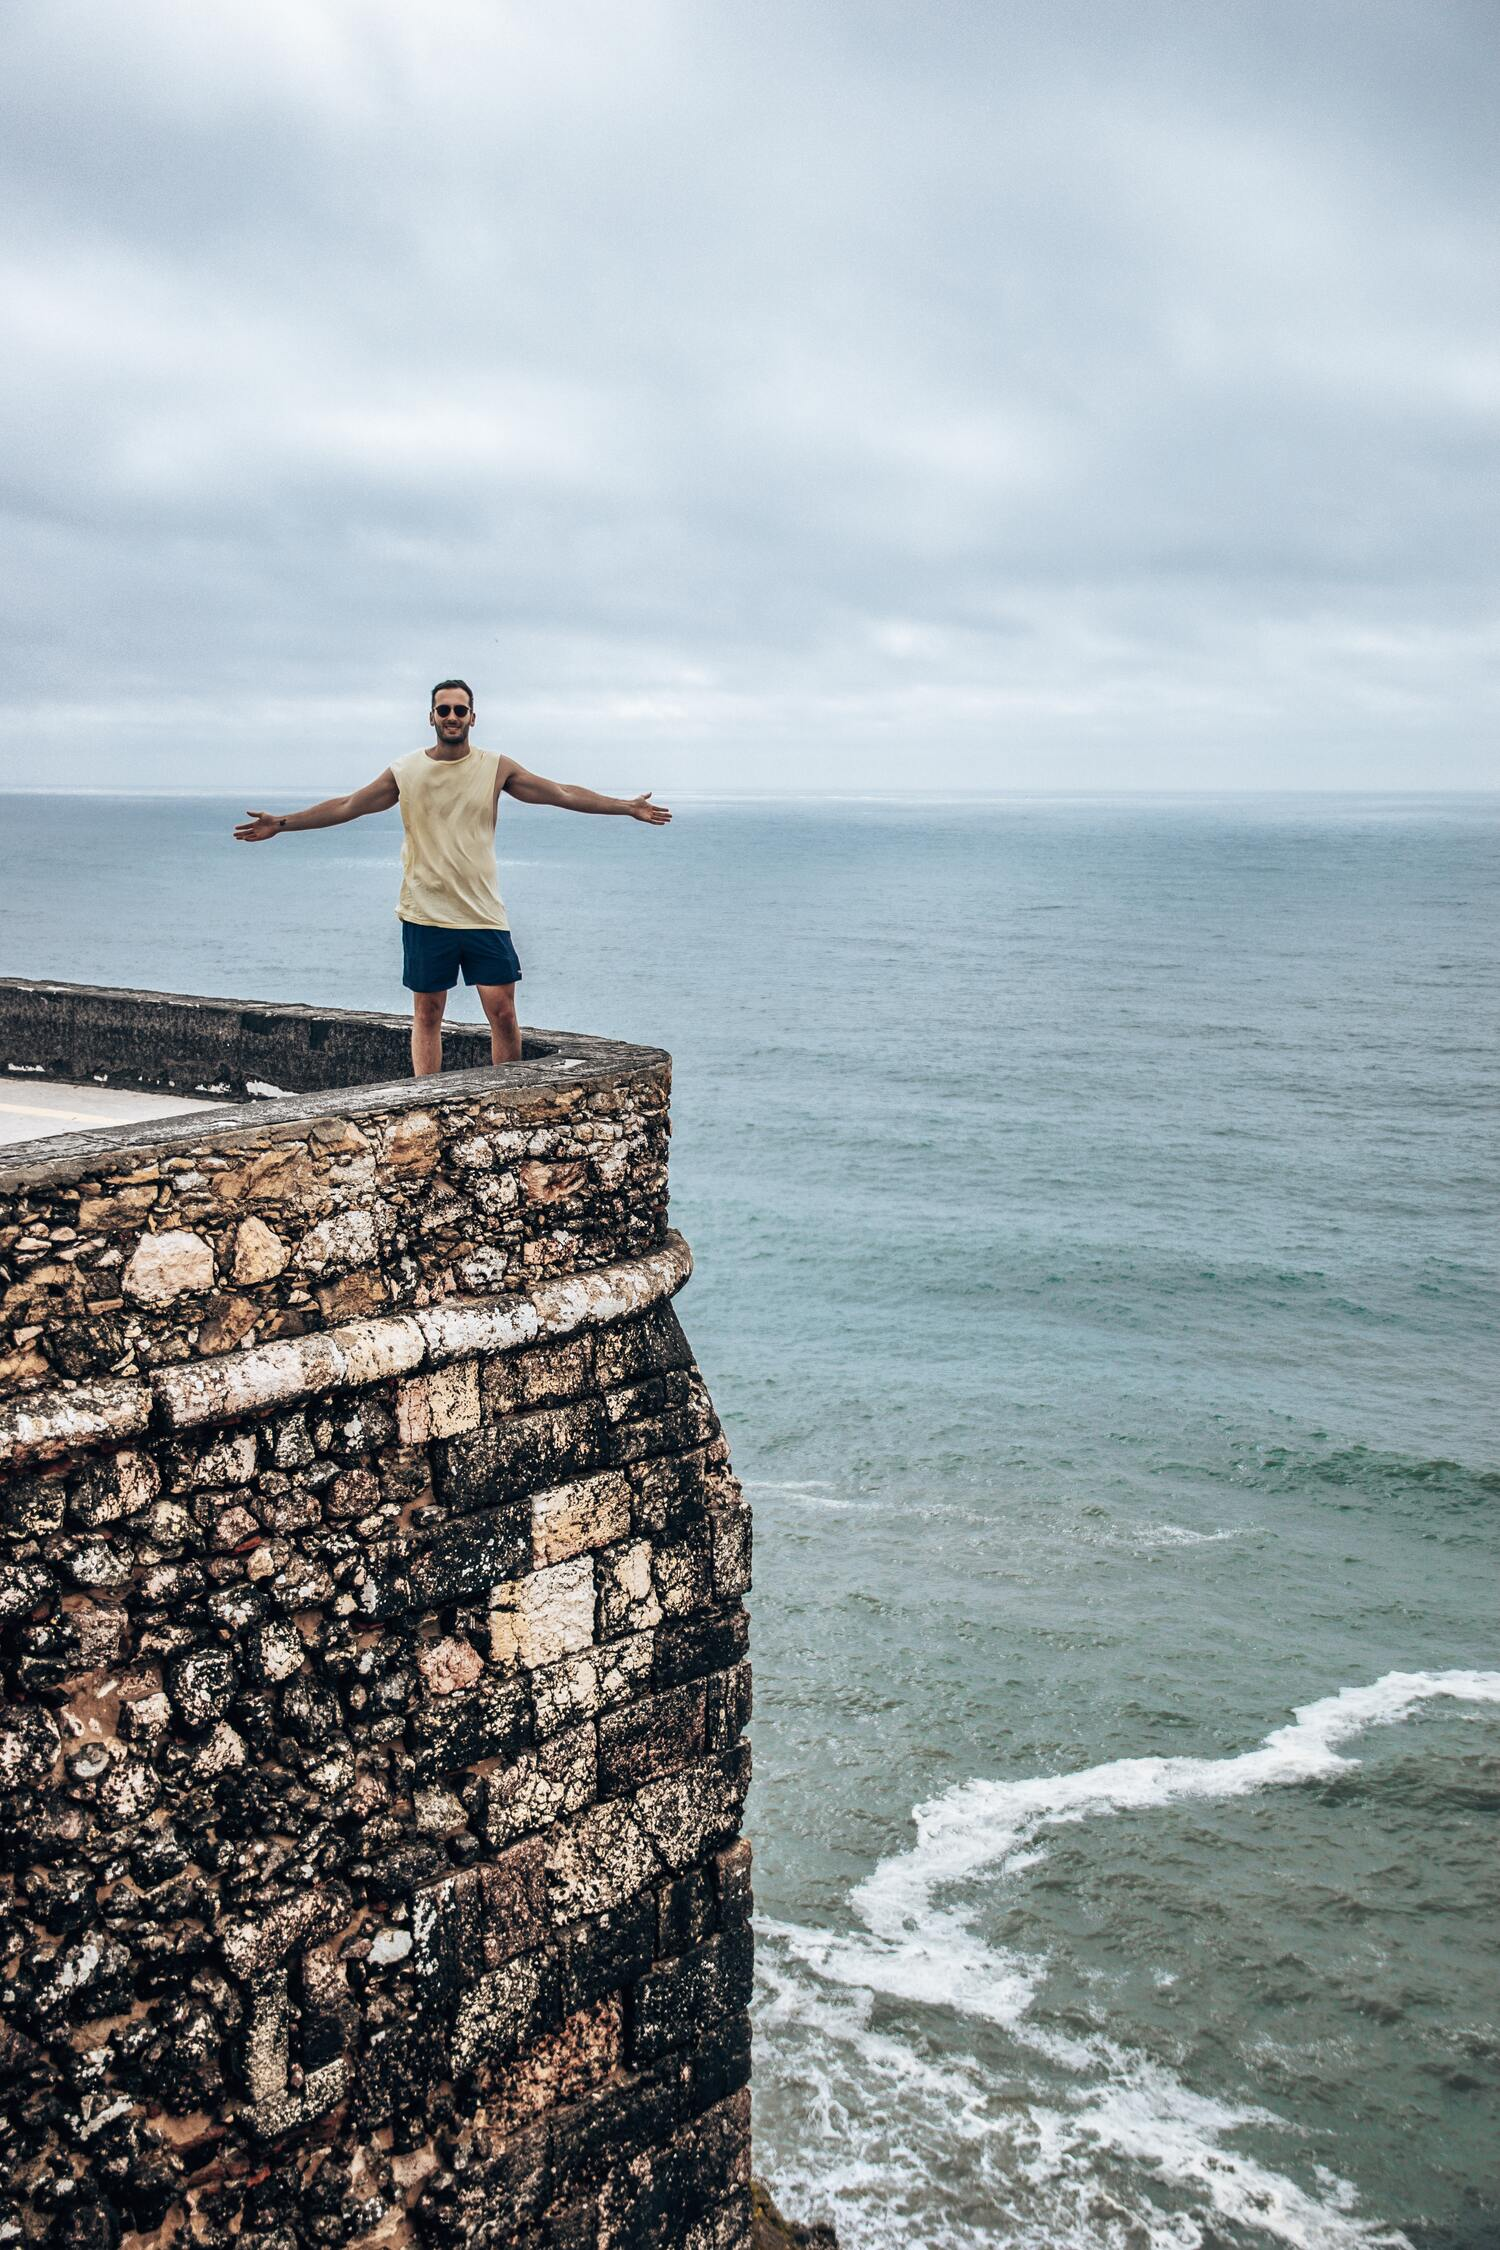 Nazare lighthouse is a must visit location when venturing on a Portugal road trip